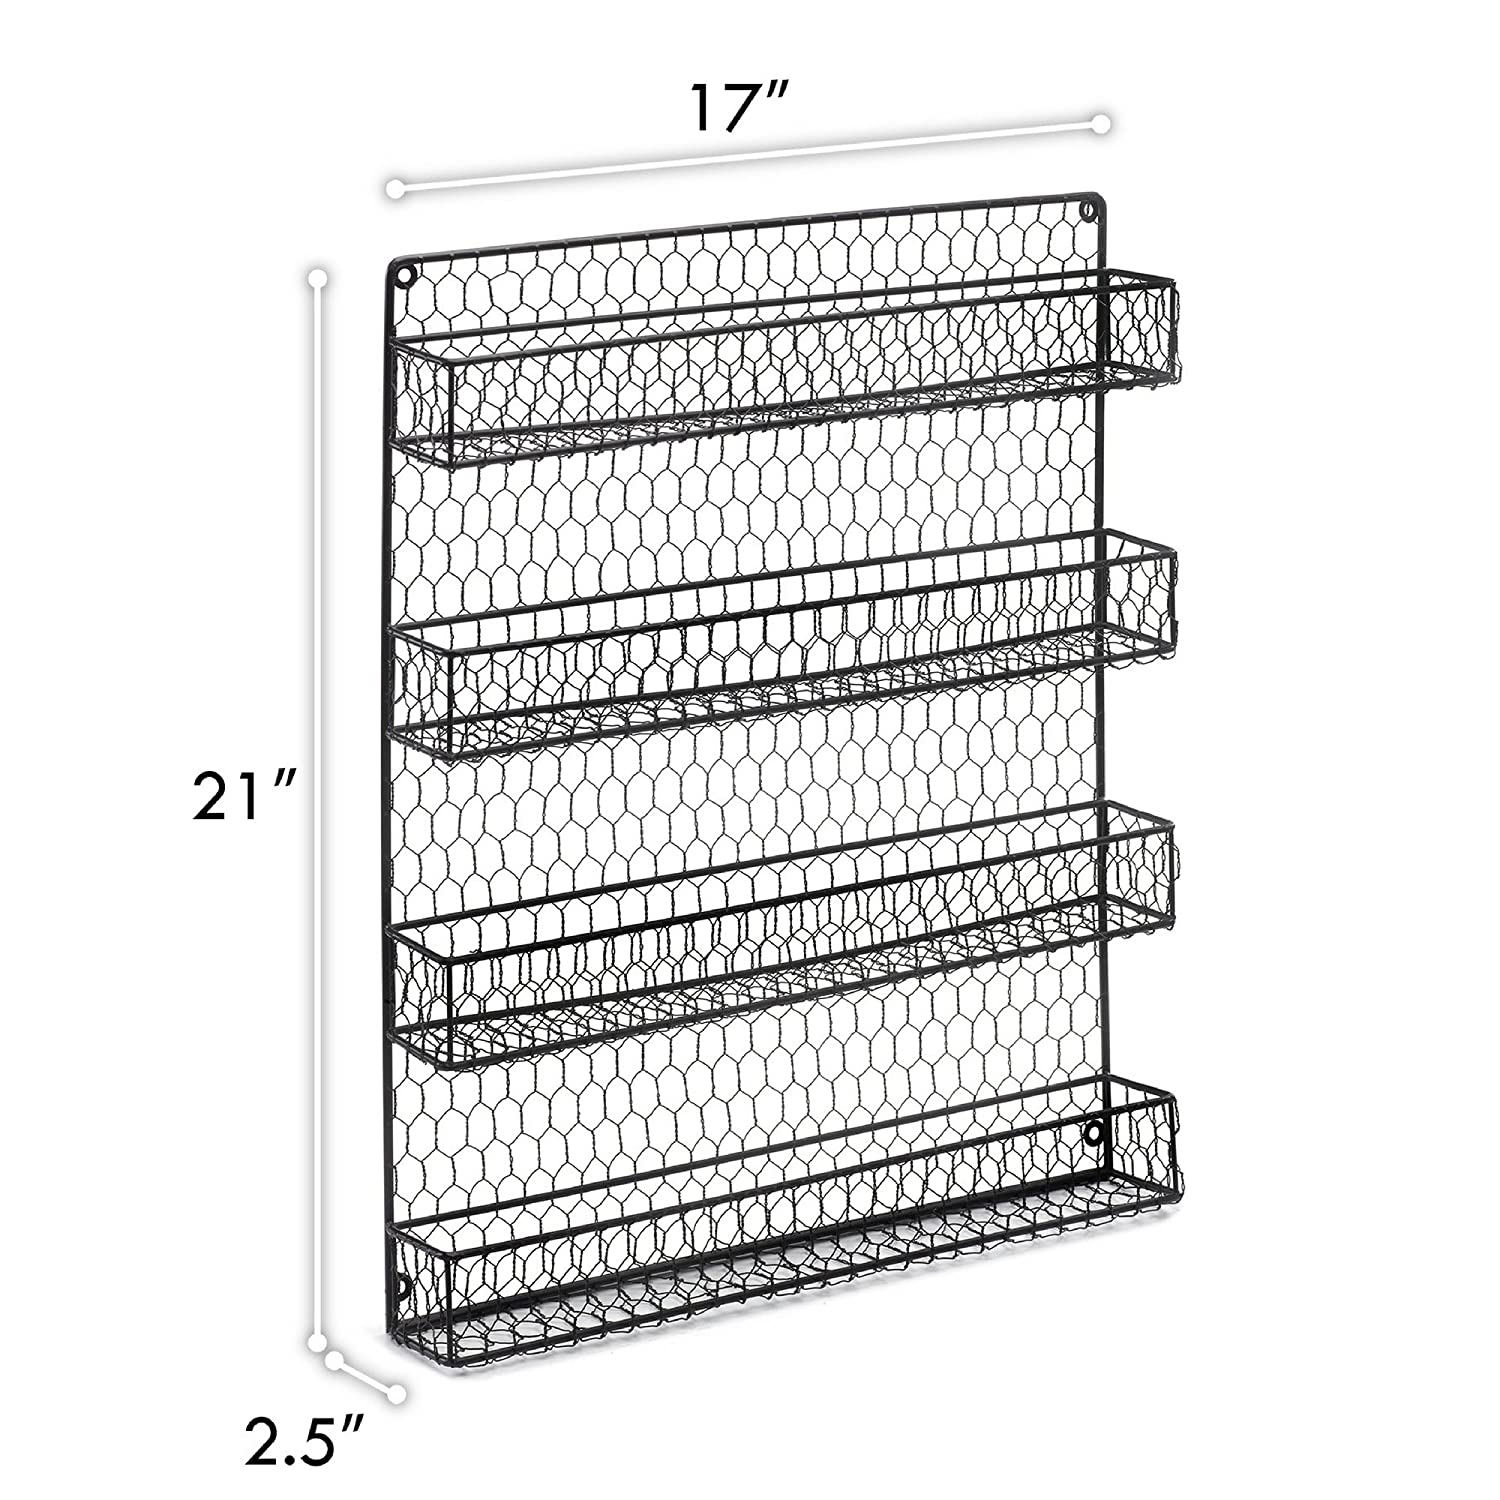 Amazon.com: 4 Tier Country Metal Chicken Wire Spice Rack from 1790 ...